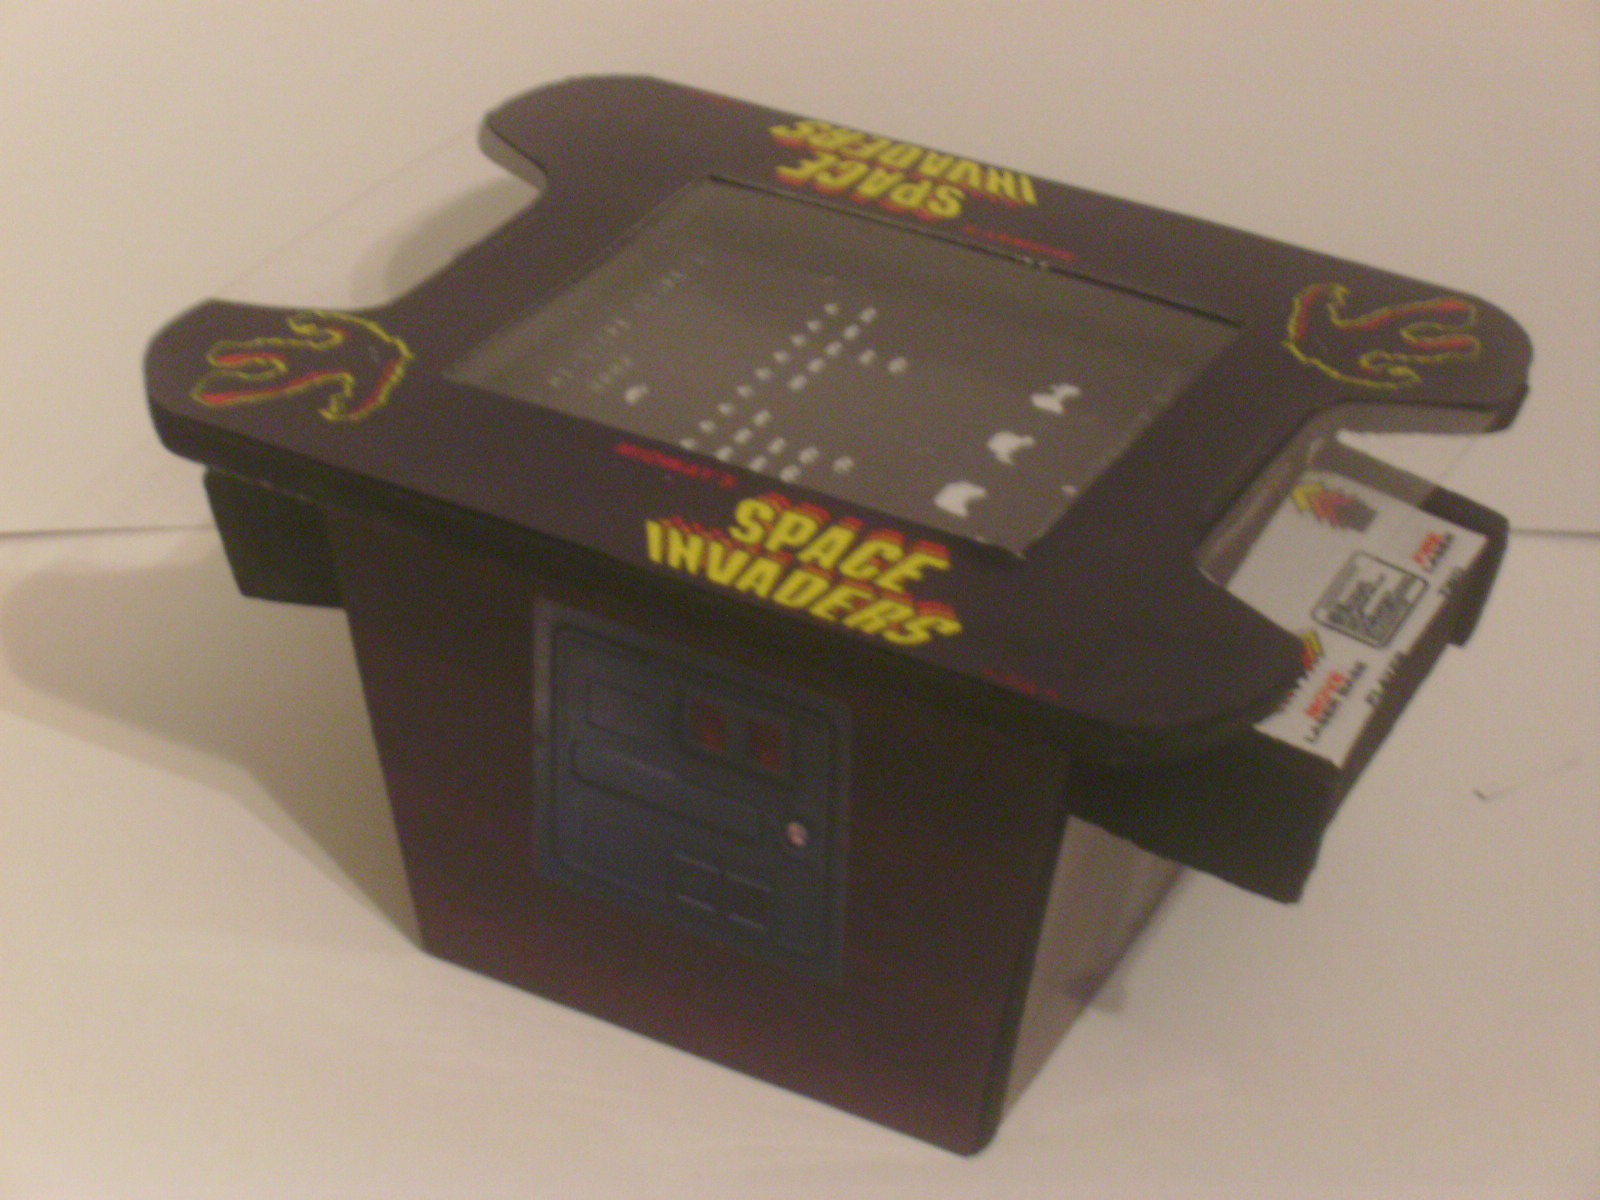 Home Gt Furniture Gt Coffee Tables Gt Space Invaders Coffee Table